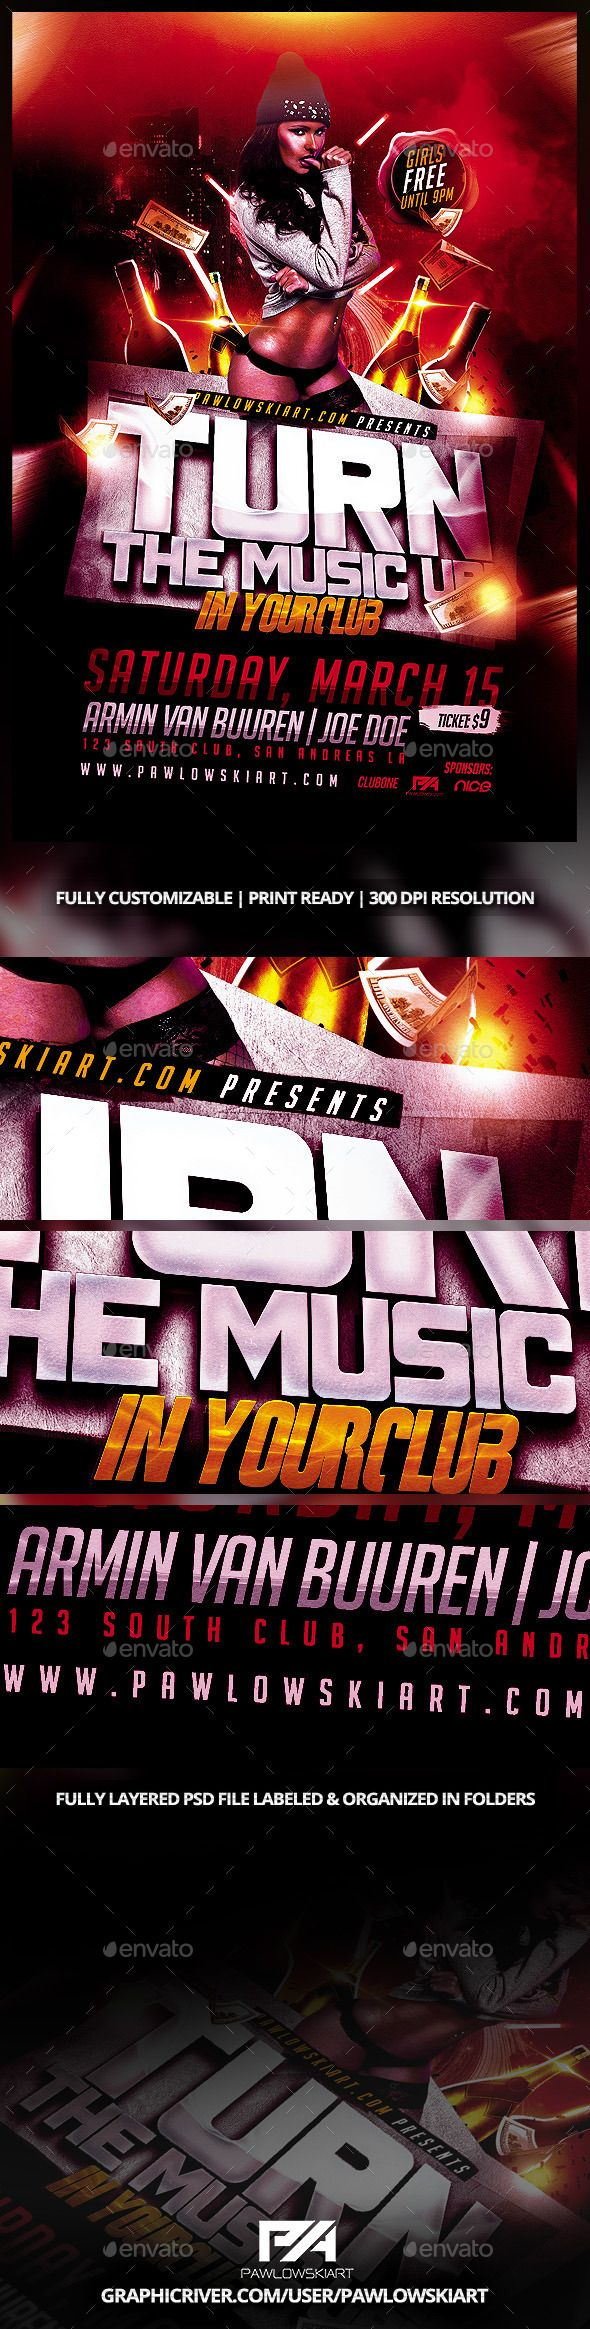 Turn The Music Up Party Flyer Template - Clubs & Parties Events